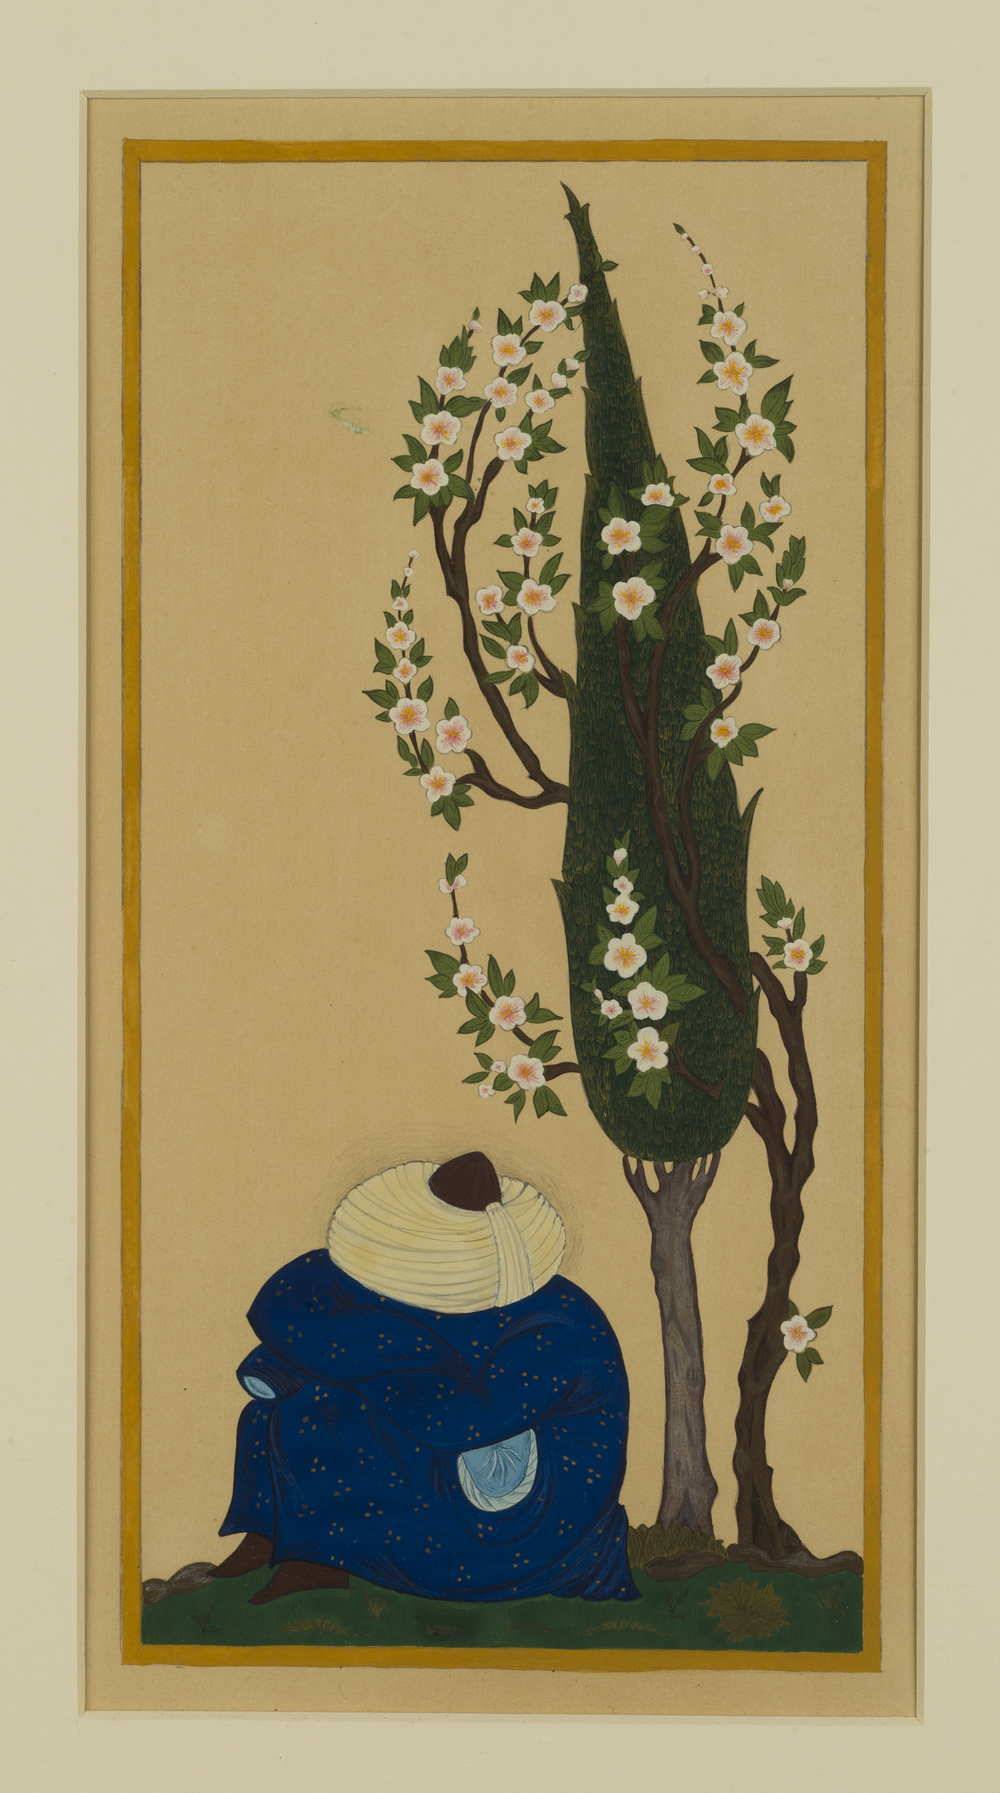 Sleeping Sufi ~ Persian Islamic Art, Pattern Design, Shaheen Kasmani.